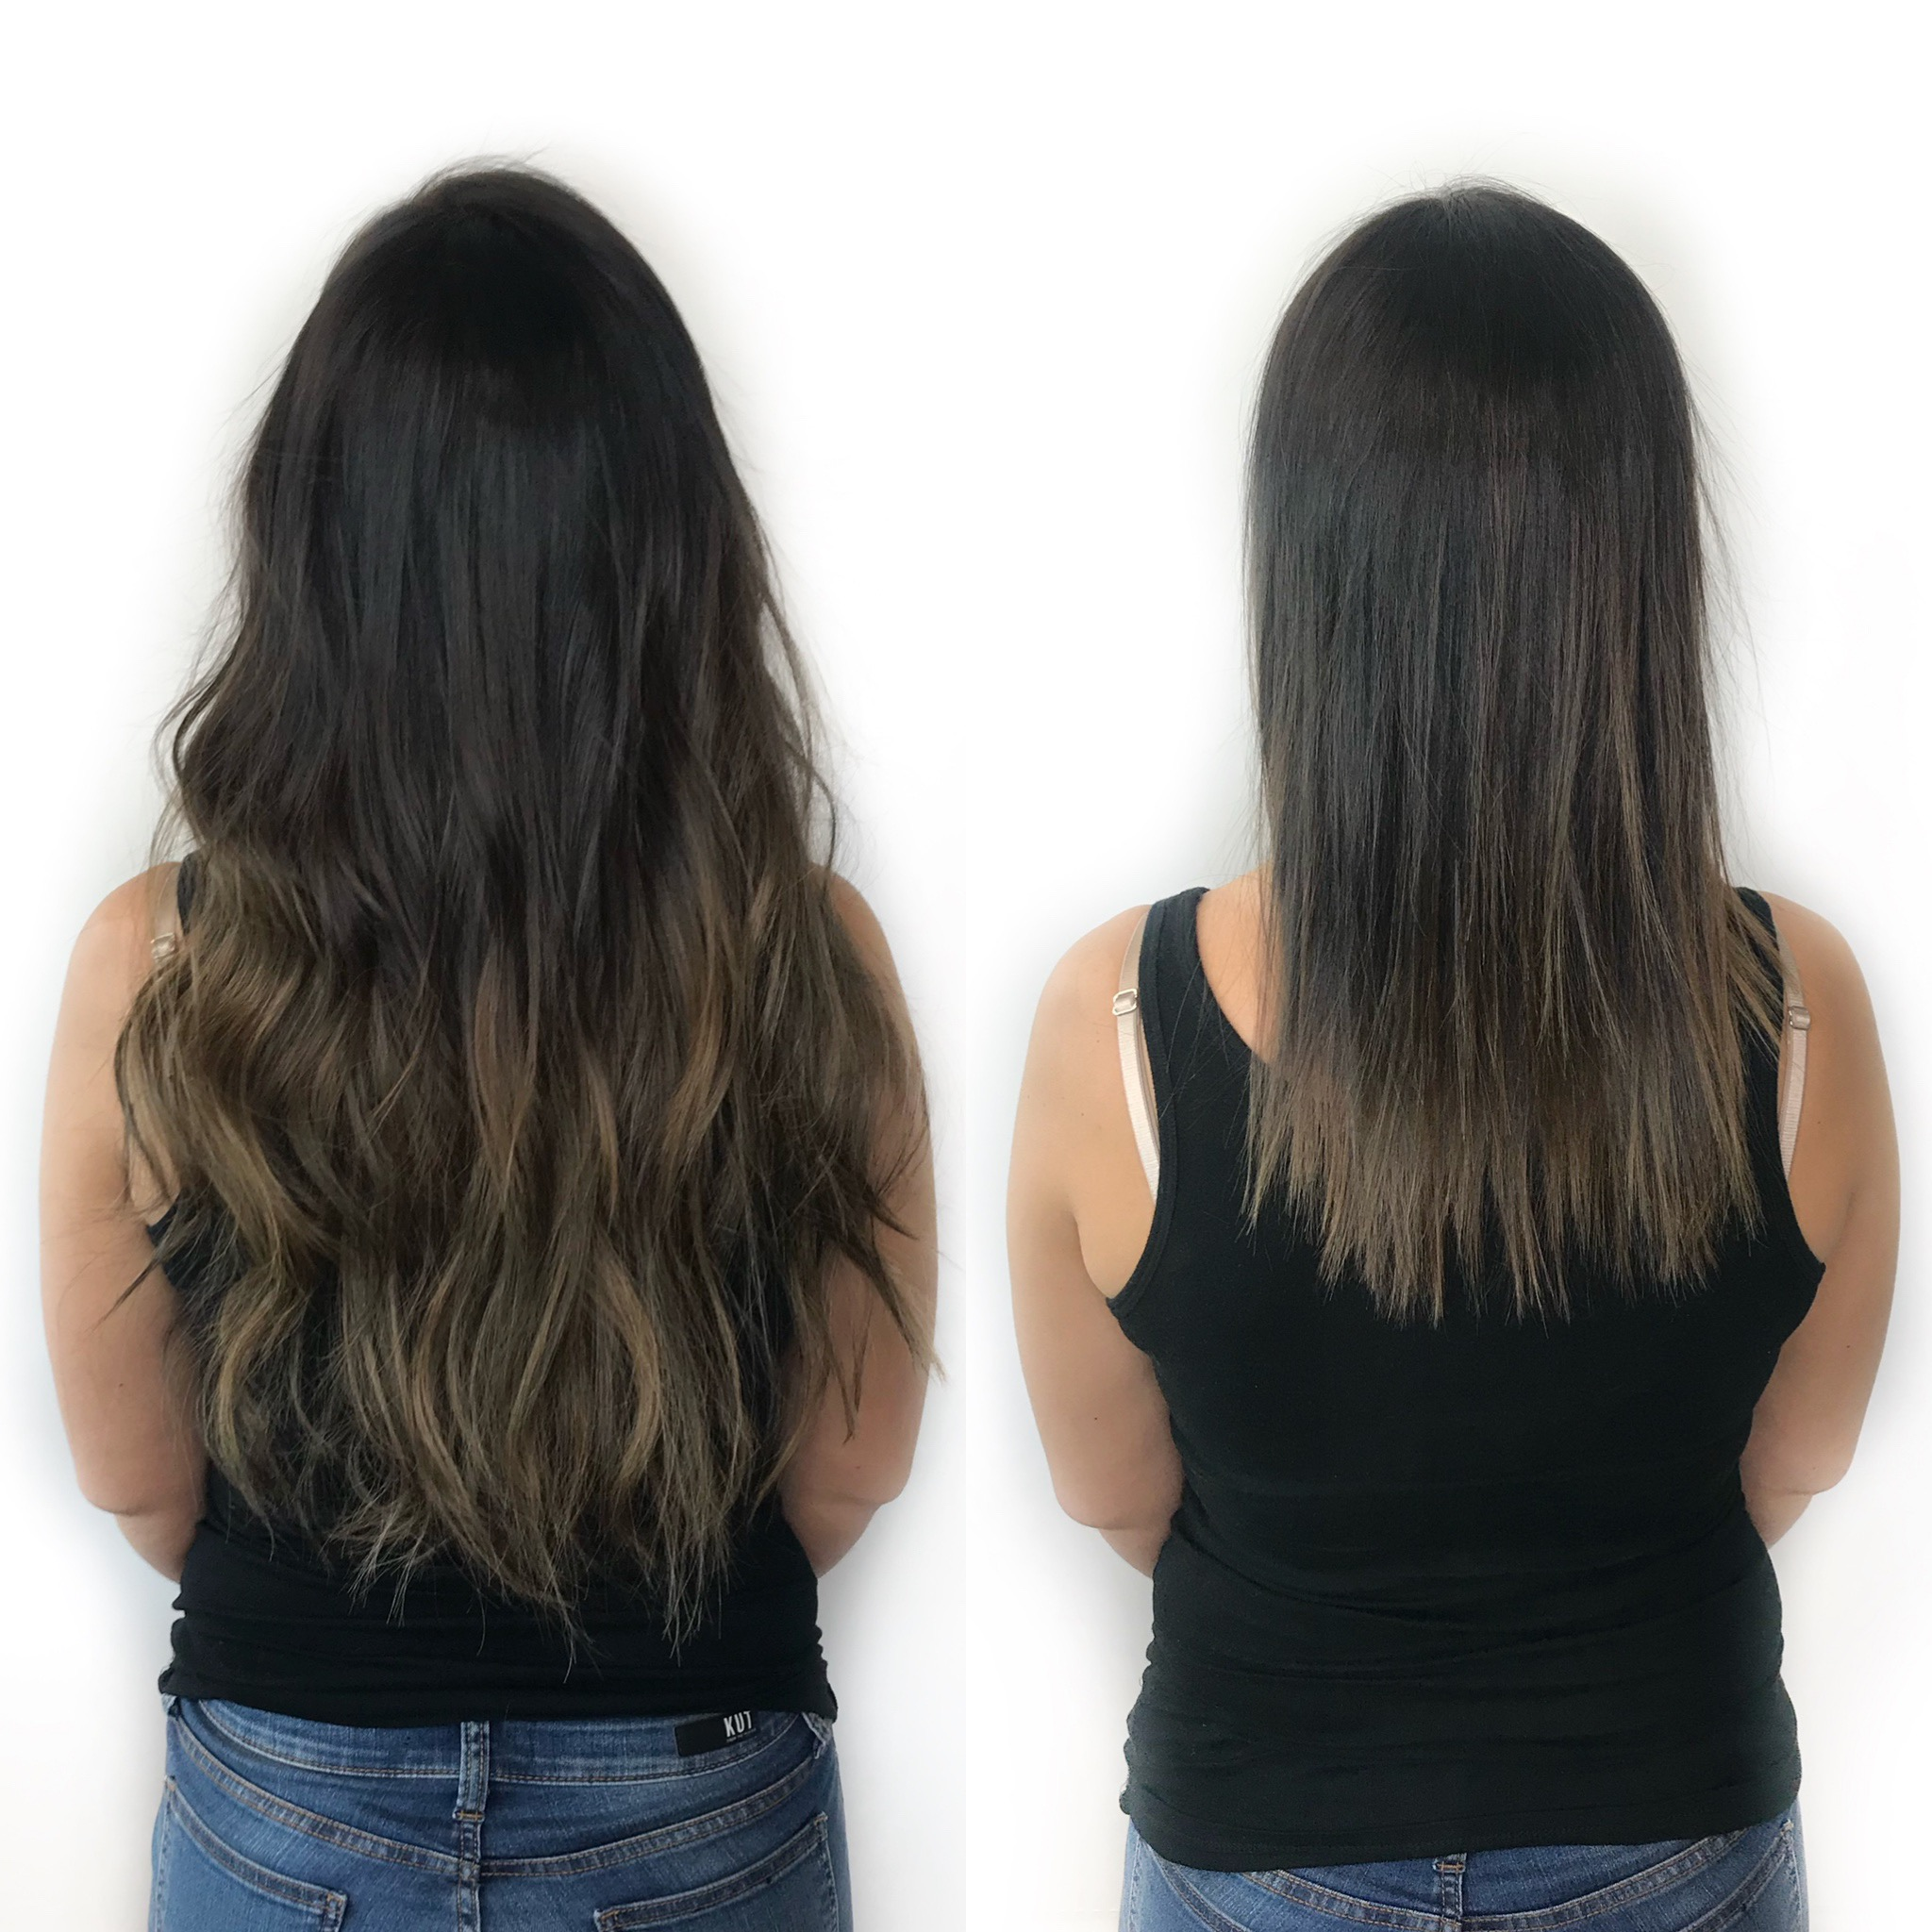 Great Lengths Before & After